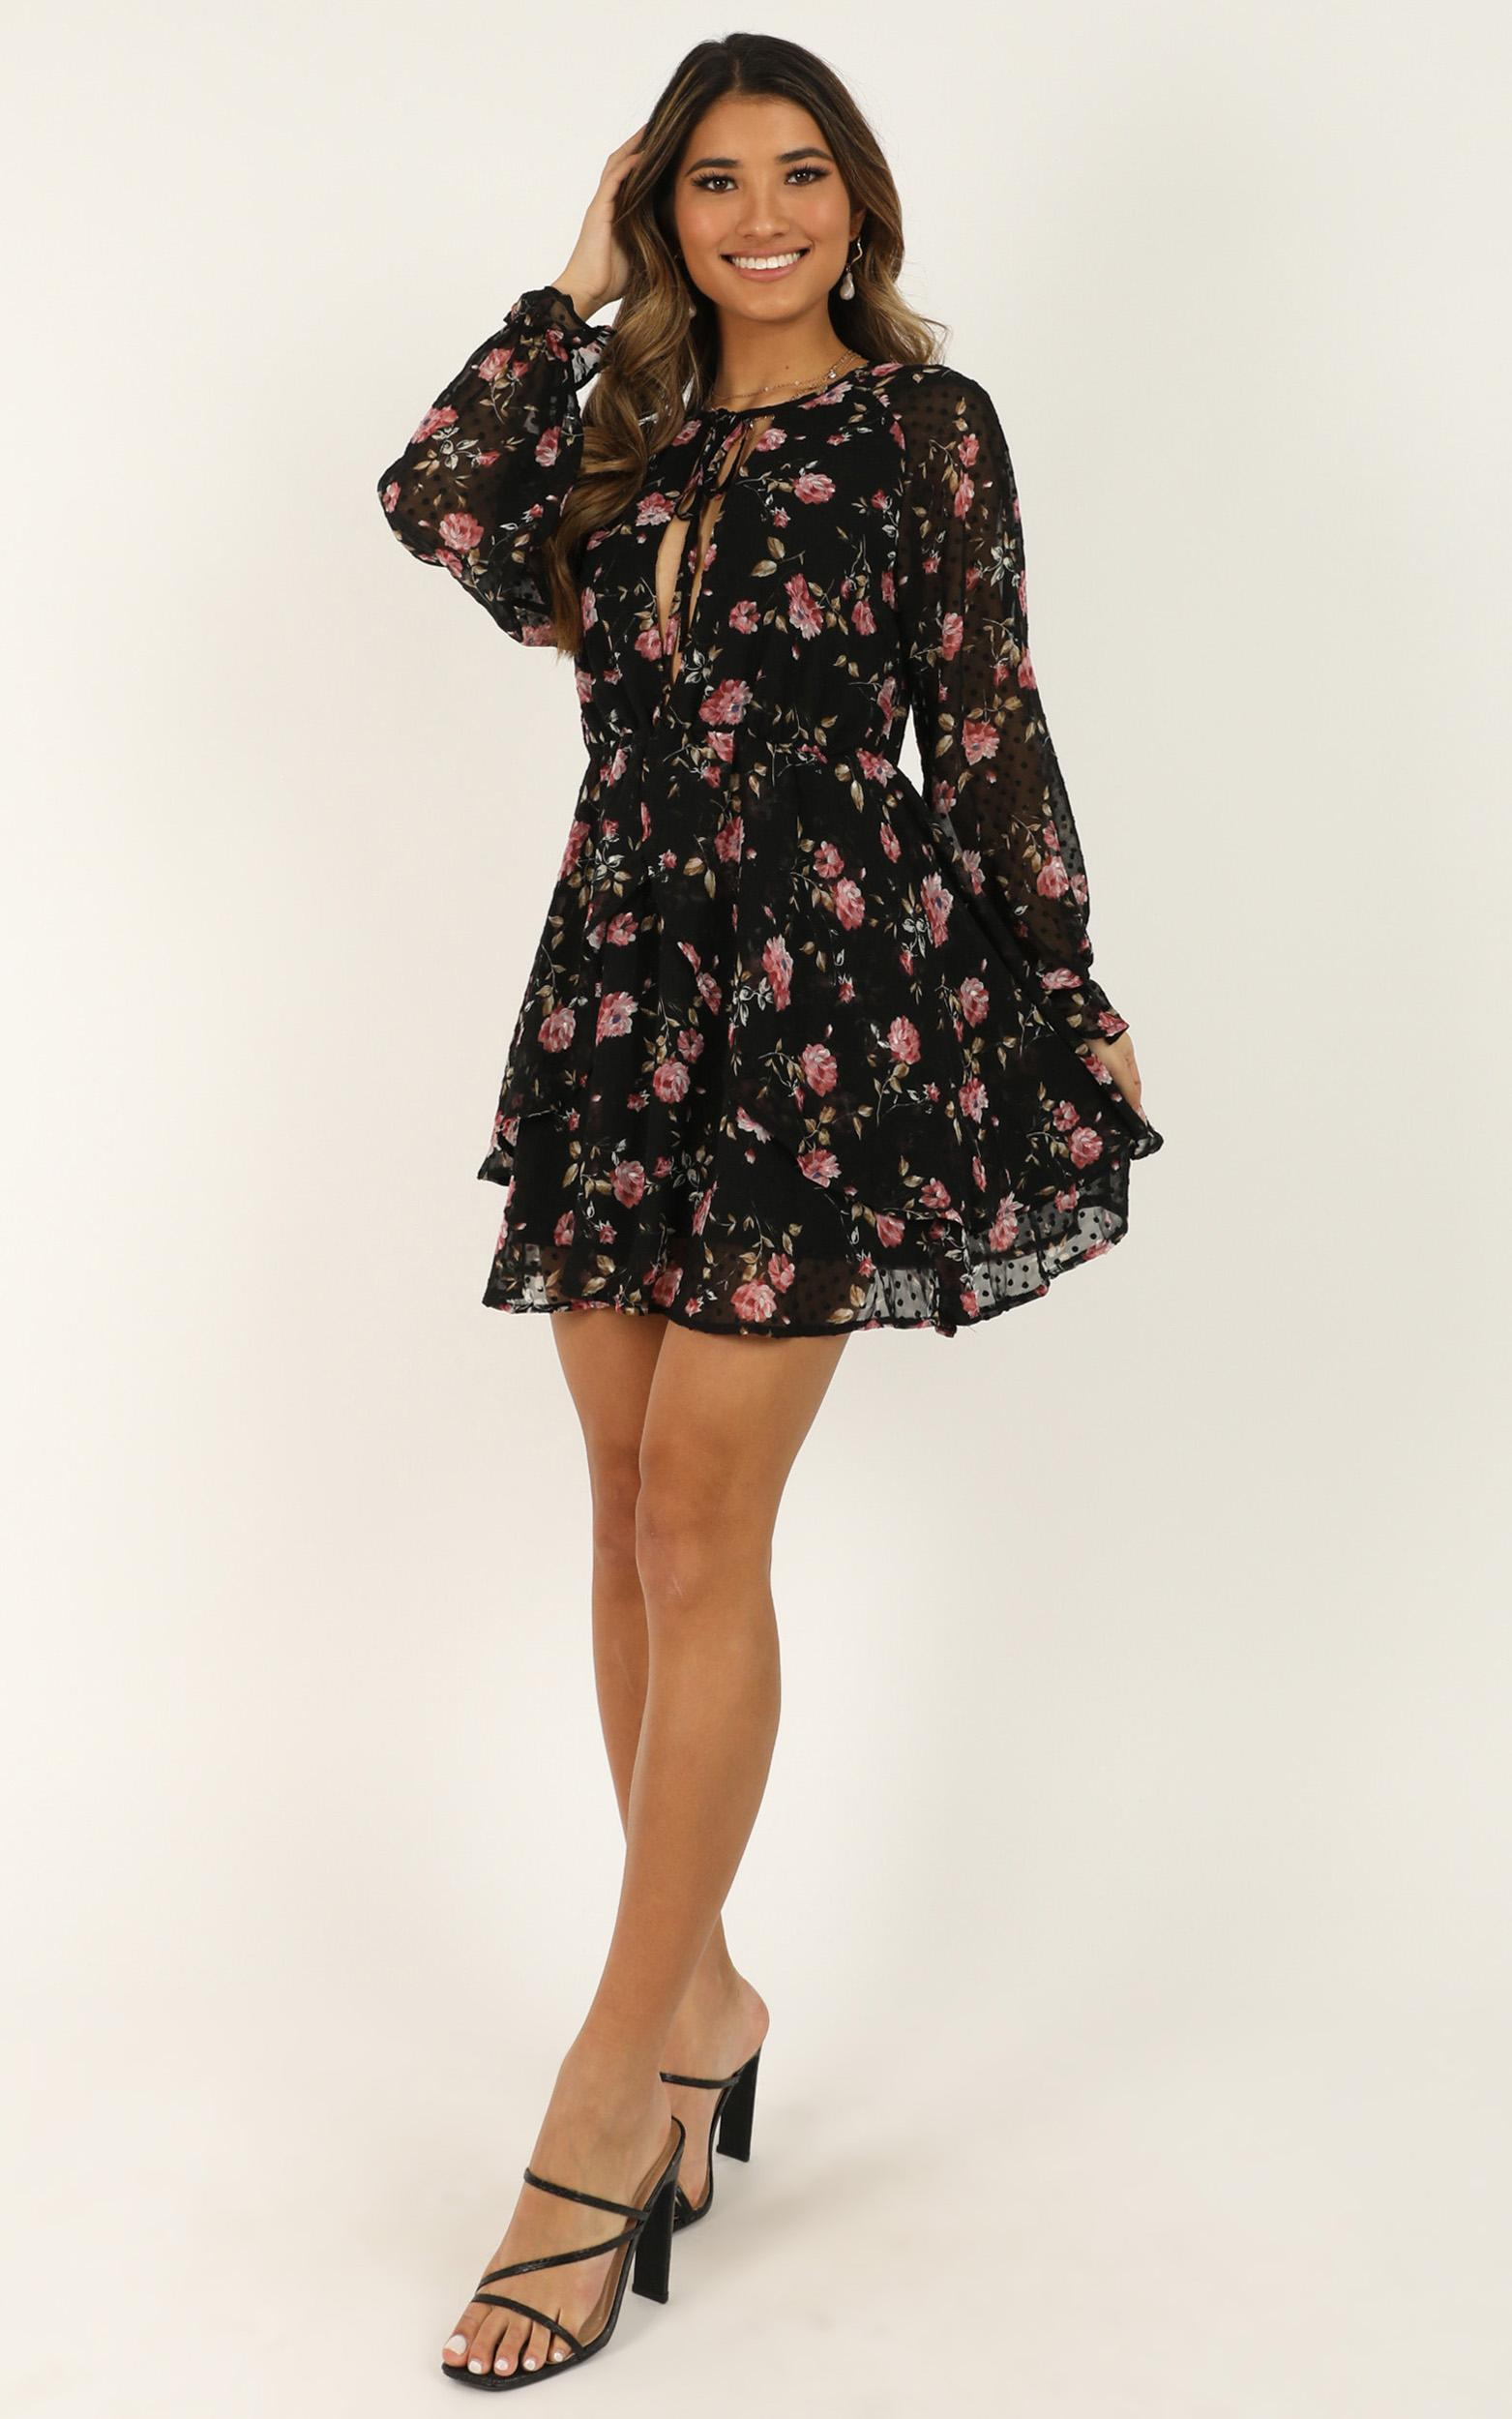 Spring blossom dress in black floral - 14 (XL), Black, hi-res image number null